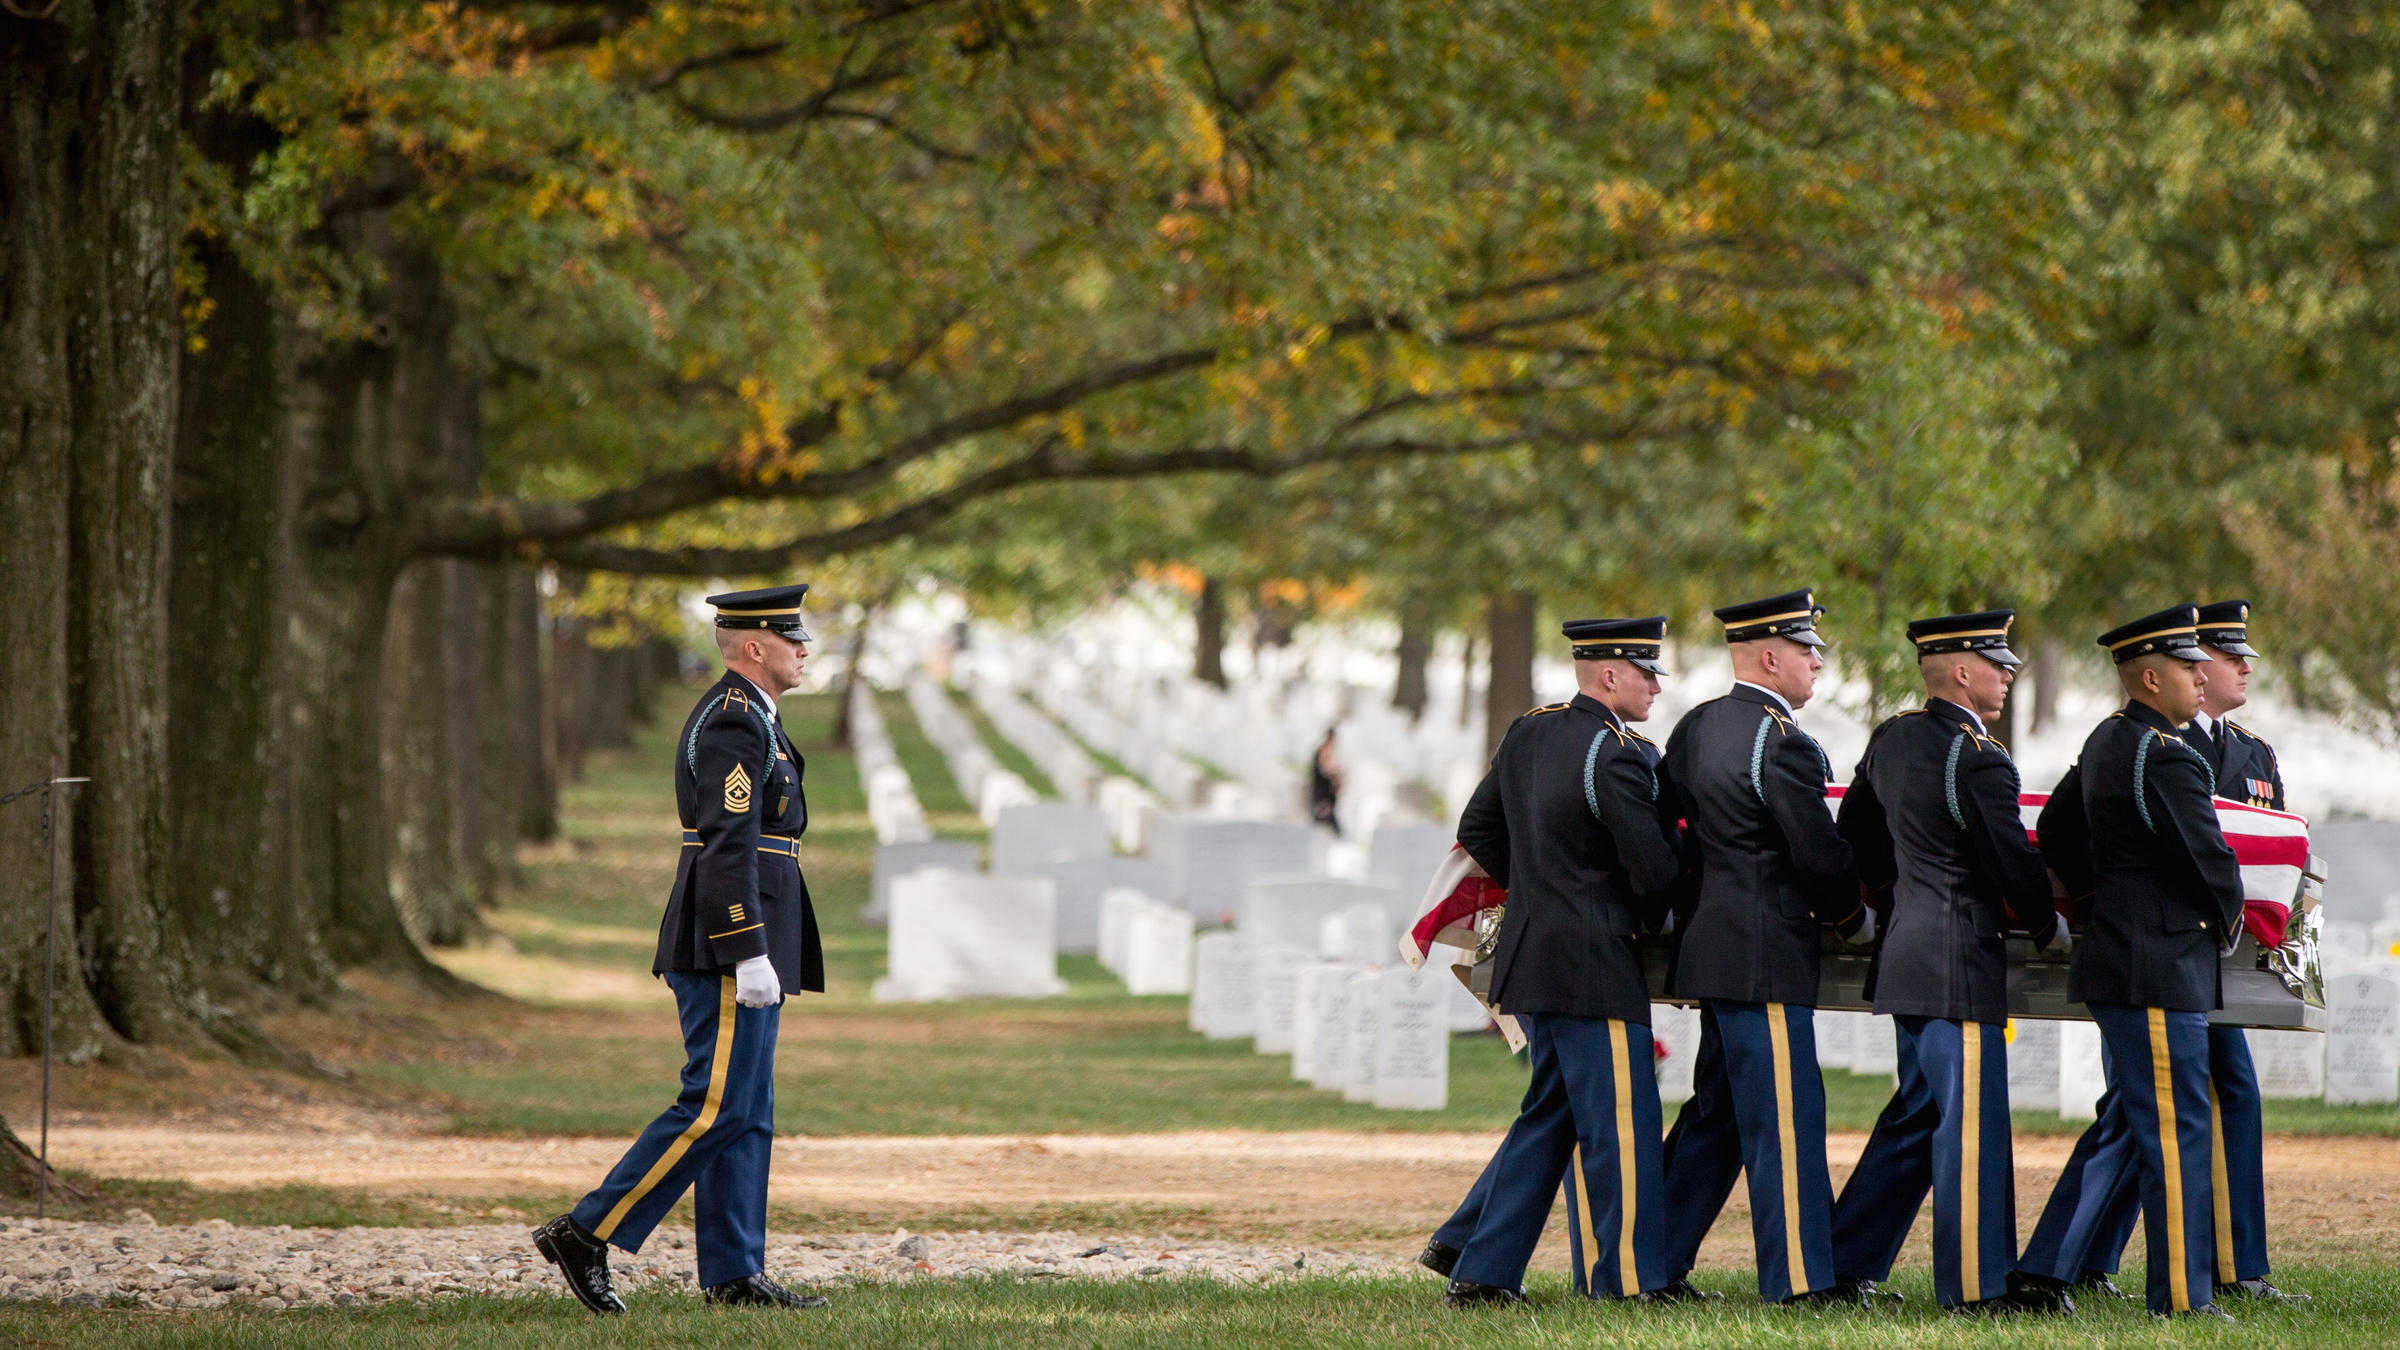 A casket team carries the remains of U.S. Army Cpl. Robert E. Meyers a Korean War soldier at Arlington National Cemetery in 2015. Meyers&#039 remains were identified decades after his unit was involved in combat operations near Sonchu North Korea